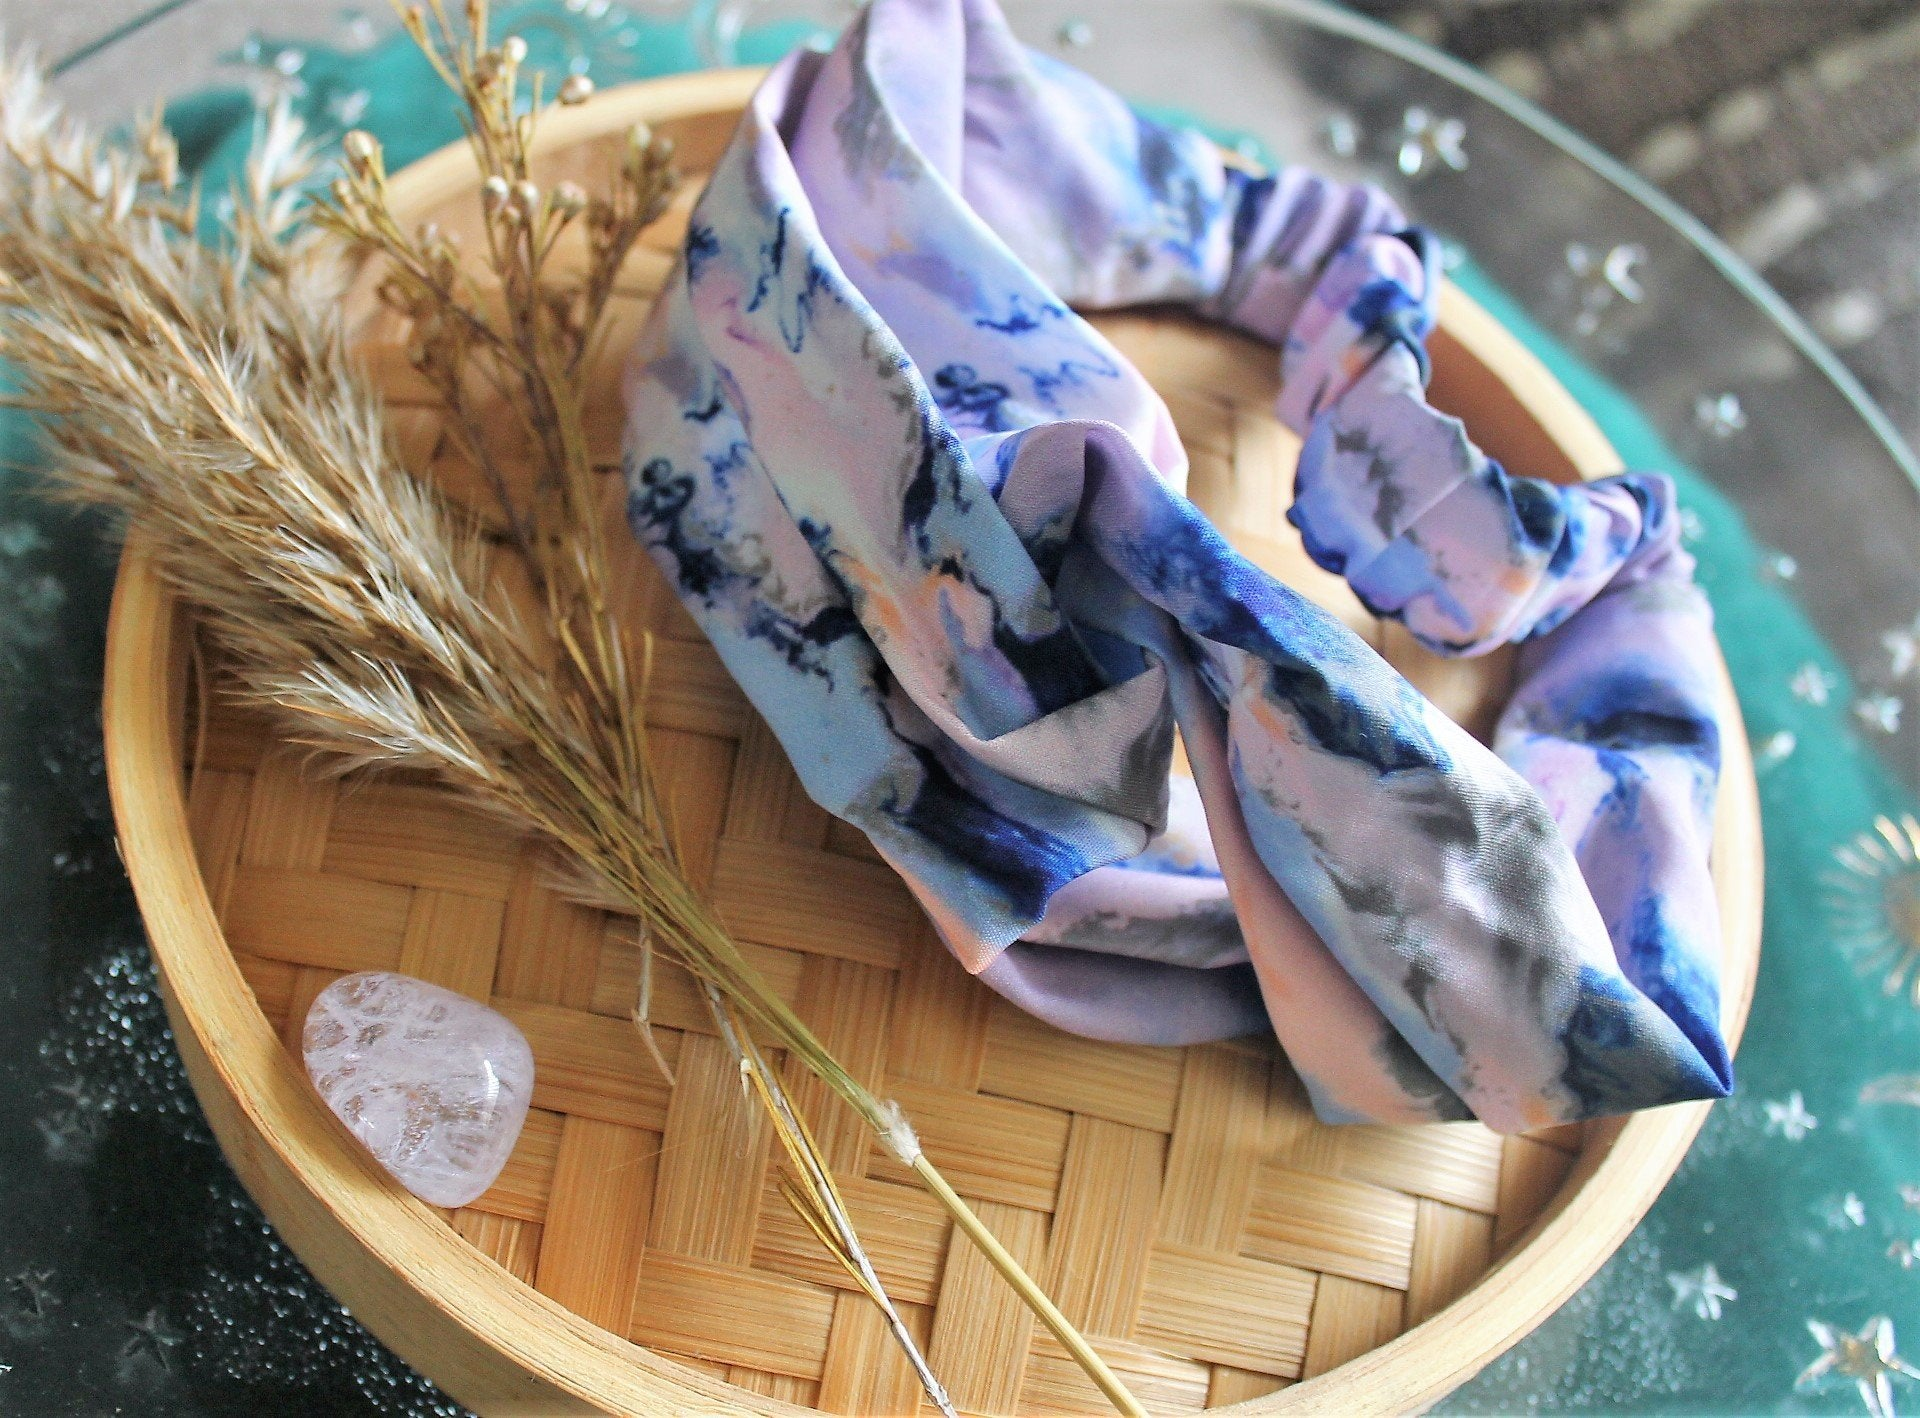 Headband-Tranquility - Emilia Rose Art Eco Yoga Mats